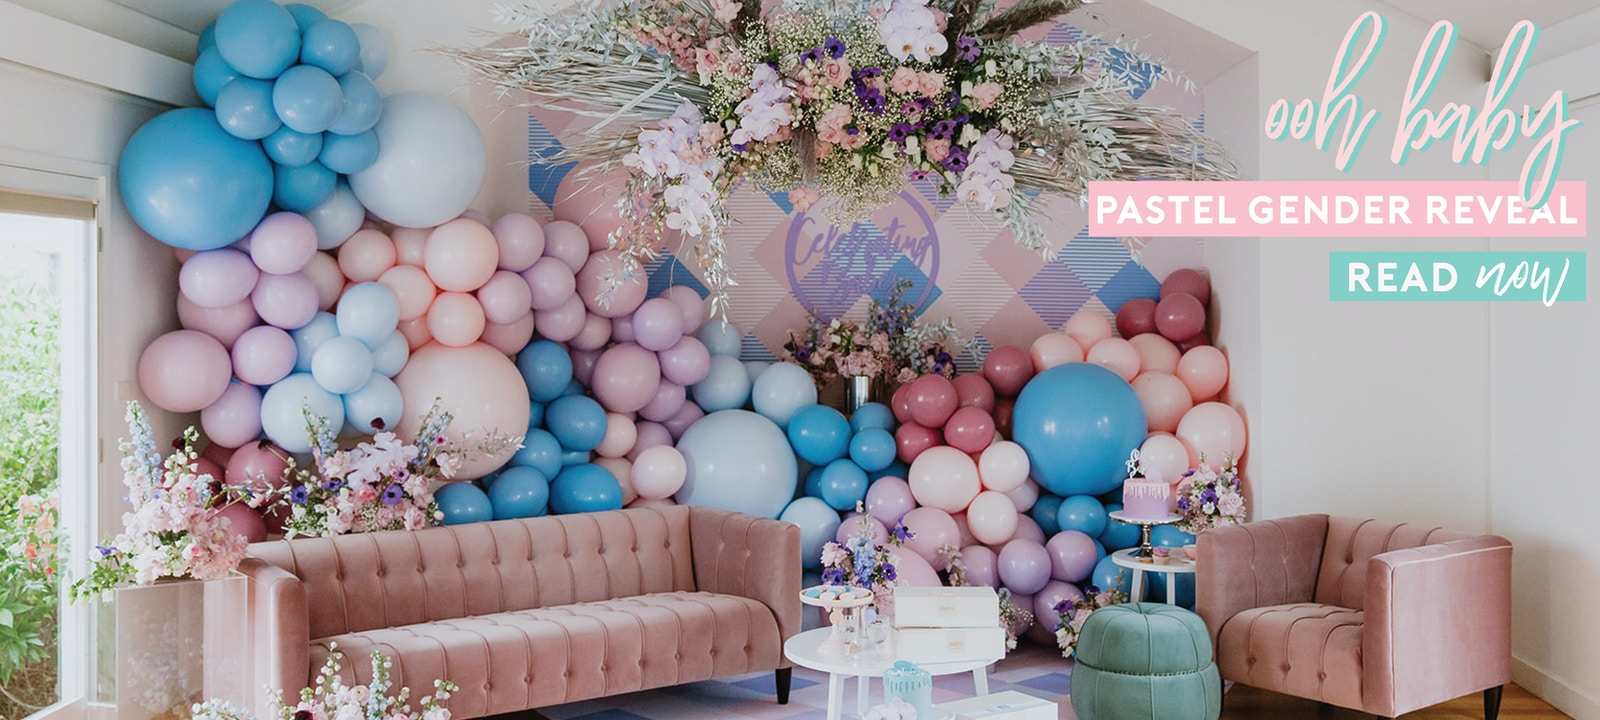 Party wedding and event hire furniture decorations in australia party wedding and event hire furniture decorations in australia lenzo junglespirit Choice Image